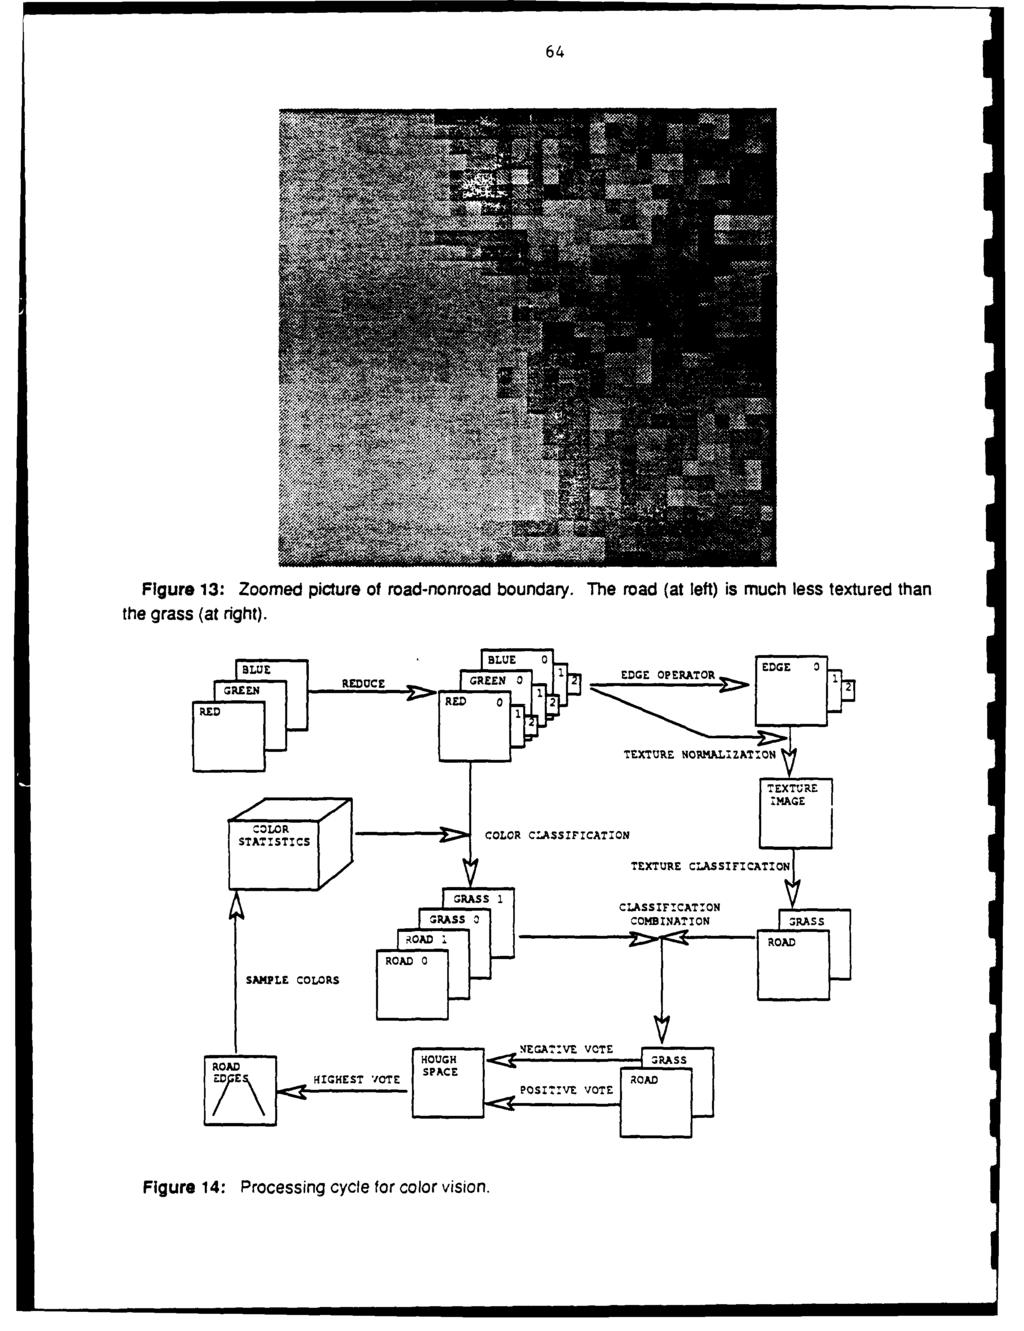 Development Of An System At Cmu June 1987 Annual Report Integrated Labview Block Diagram Zoom 64 Figure 13 Zoomed Picture Road Nonroad Boundary The